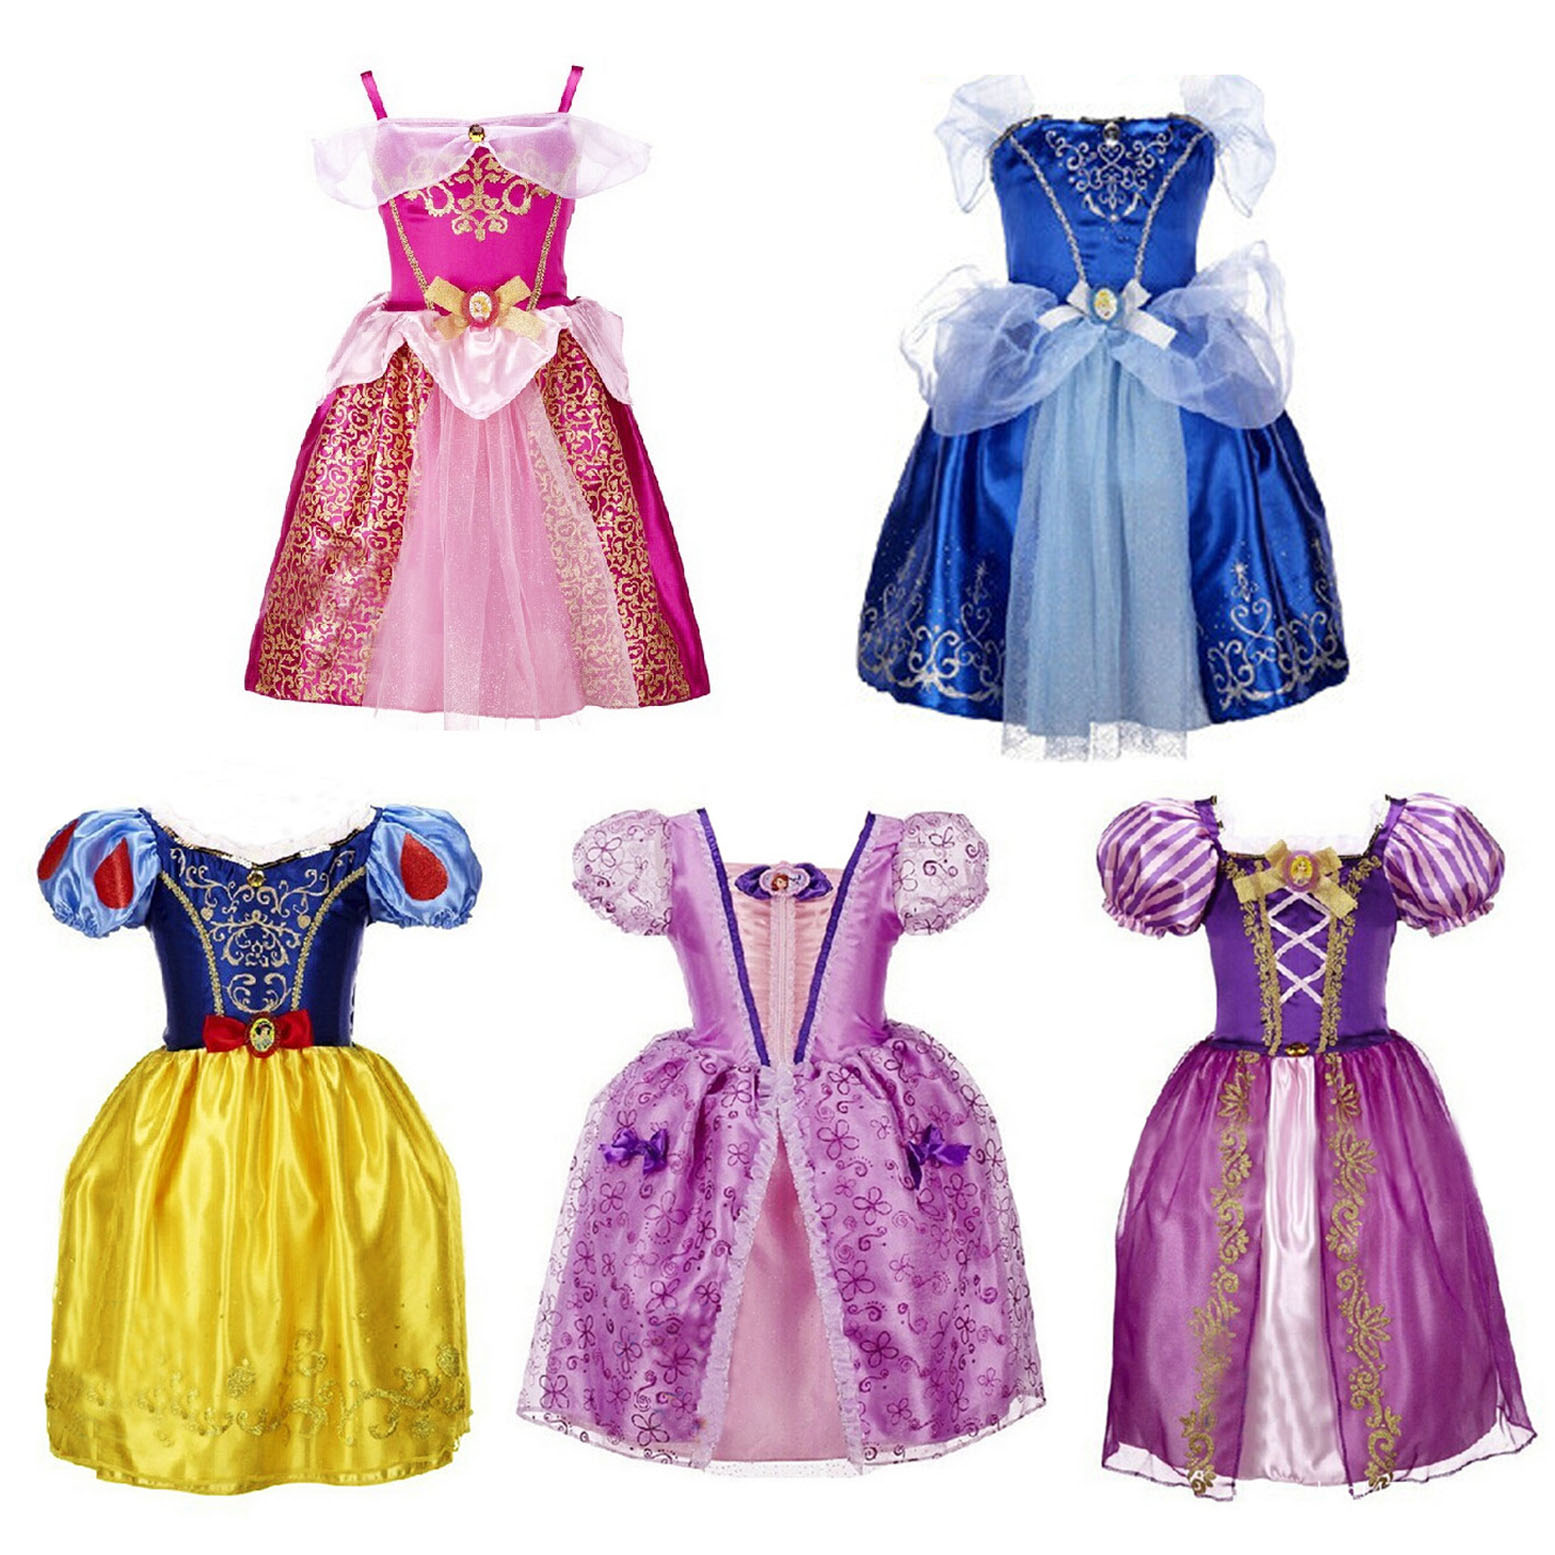 Cartoon Characters Dress Up : Children princess dress cartoon characters dinner